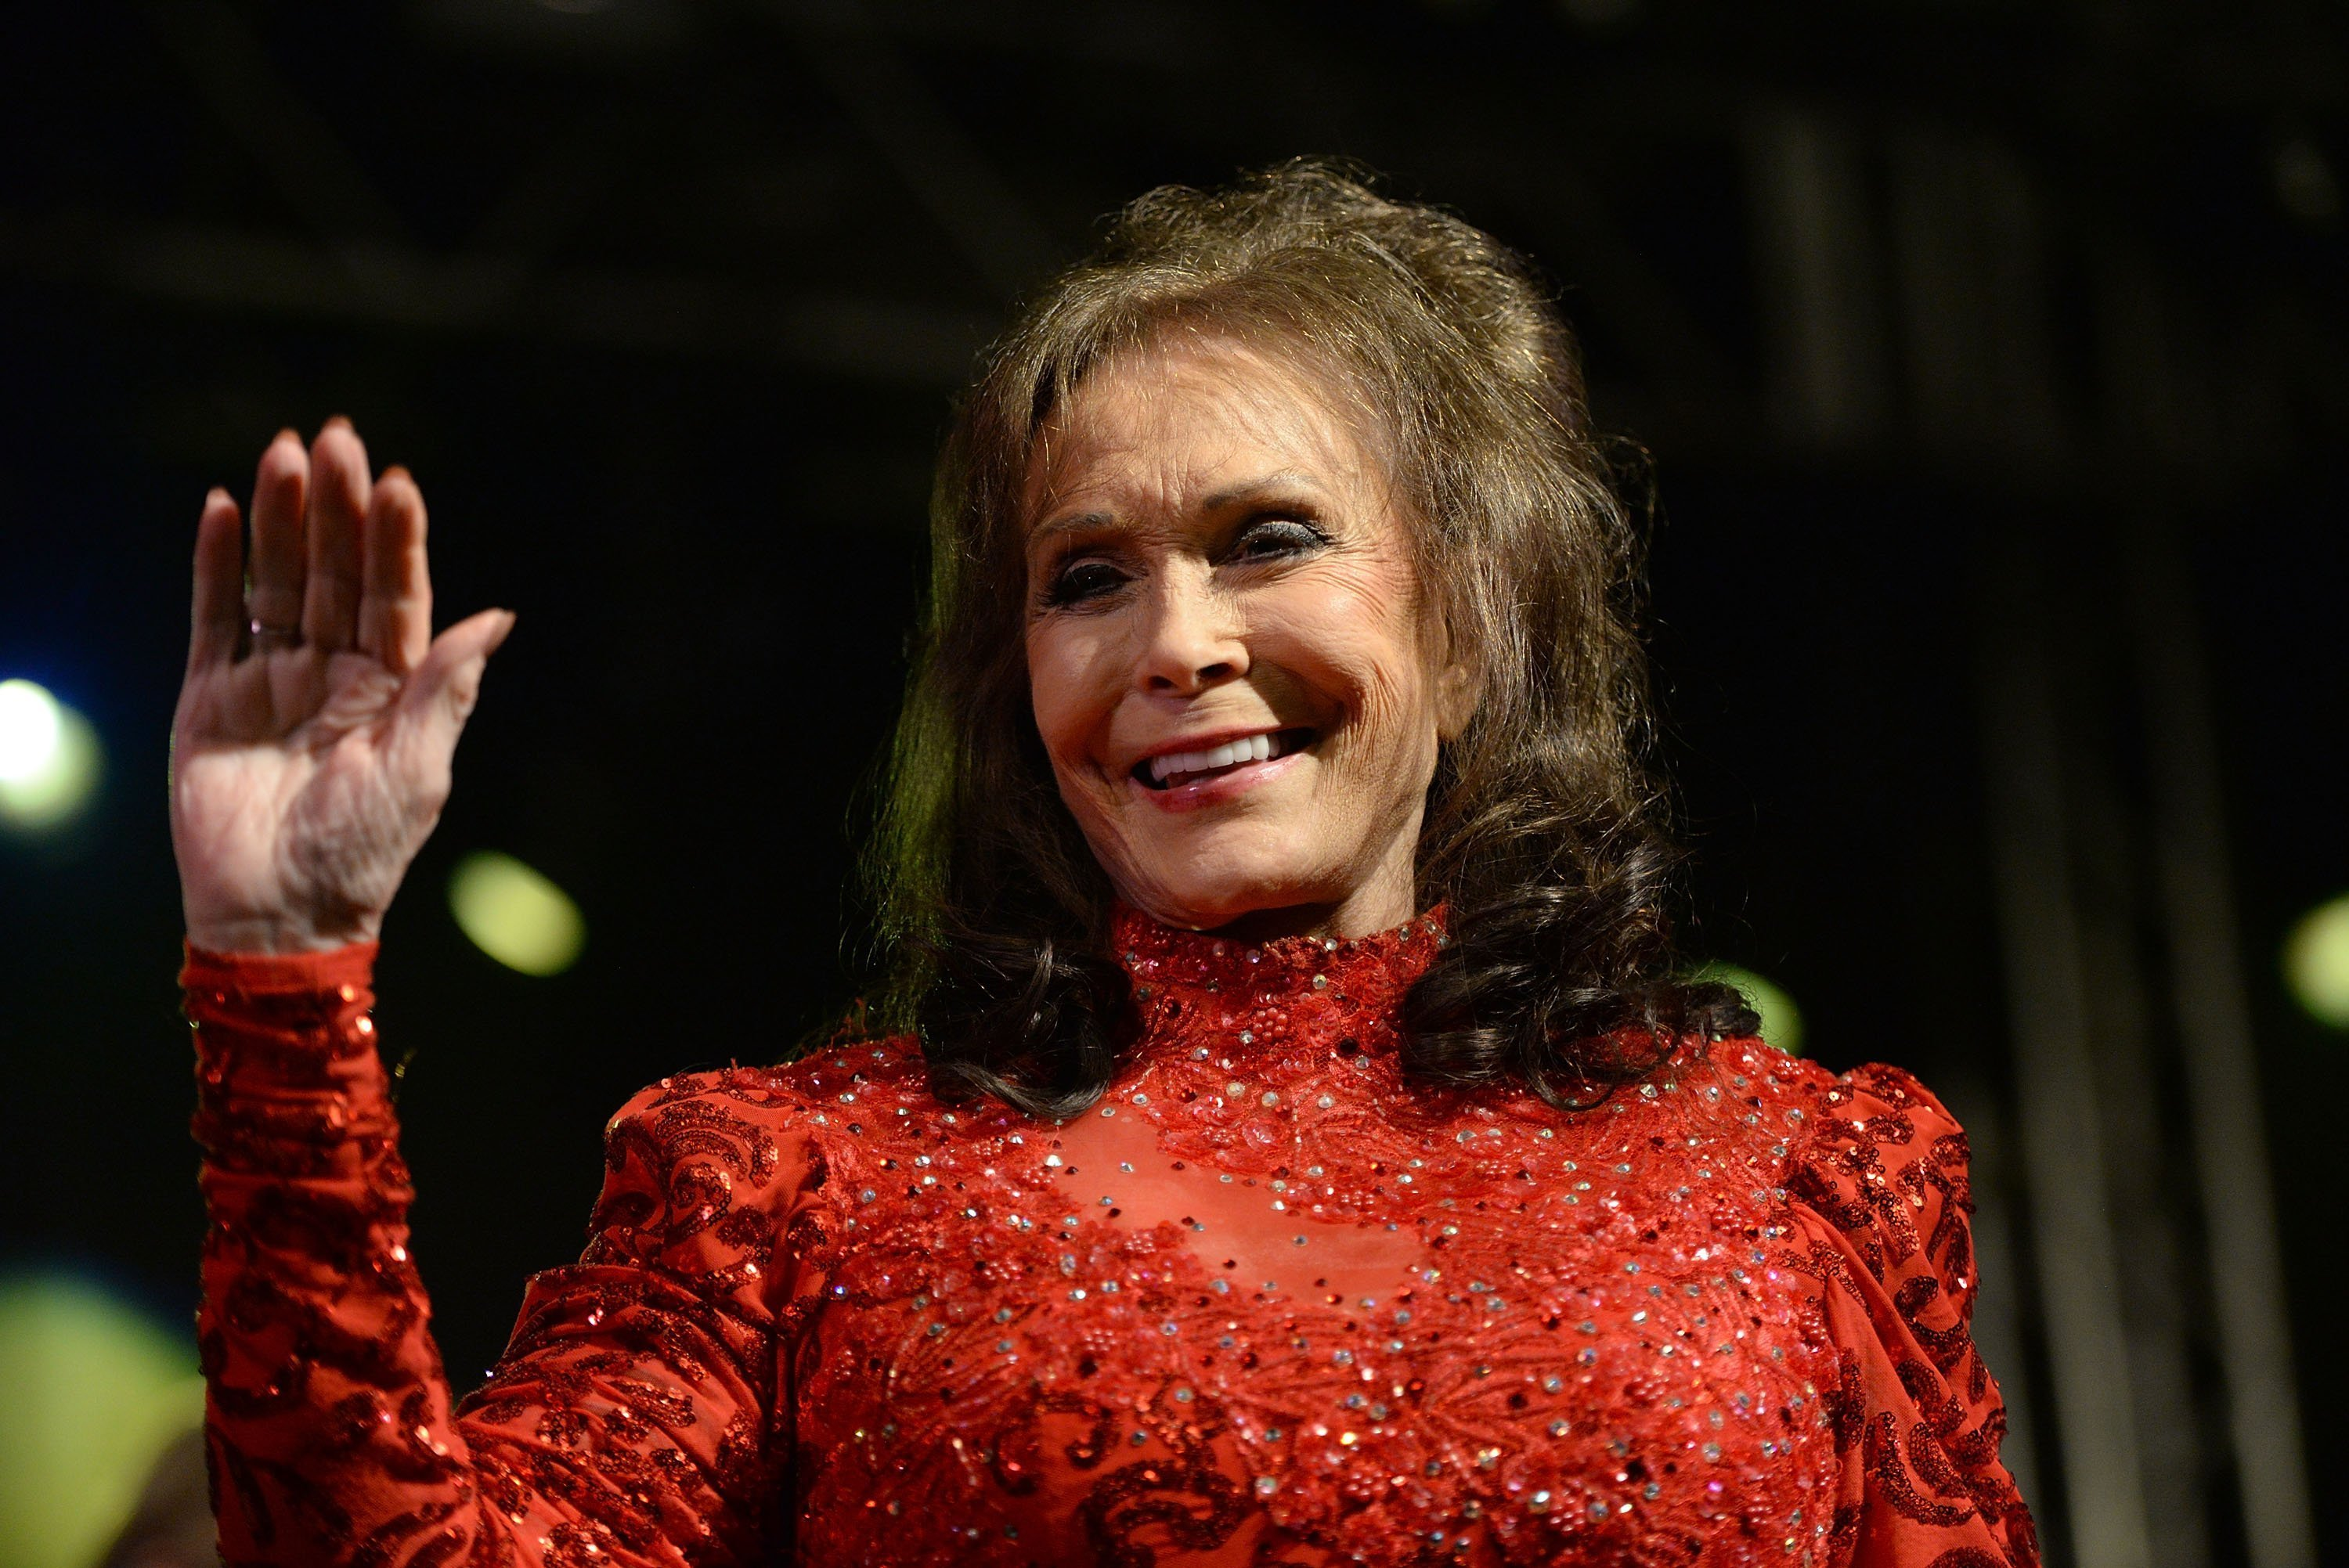 Singer Loretta Lynn performs onstage at Stubbs on March 17, 2016, in Austin, Texas. | Photo: Getty Images.